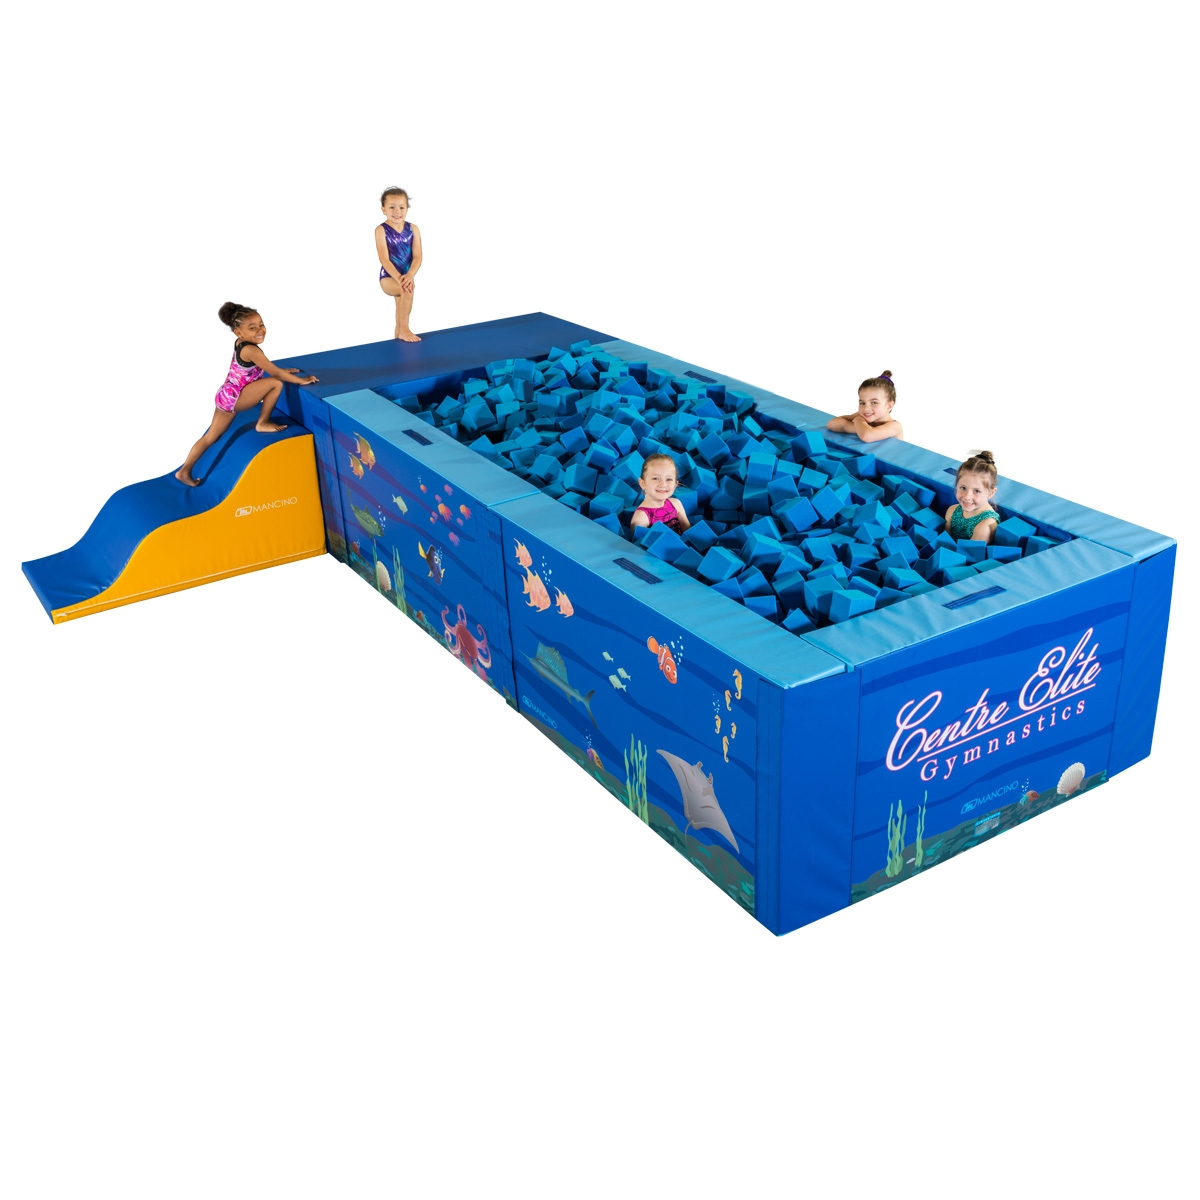 mancino mats preschool foam portable play pit